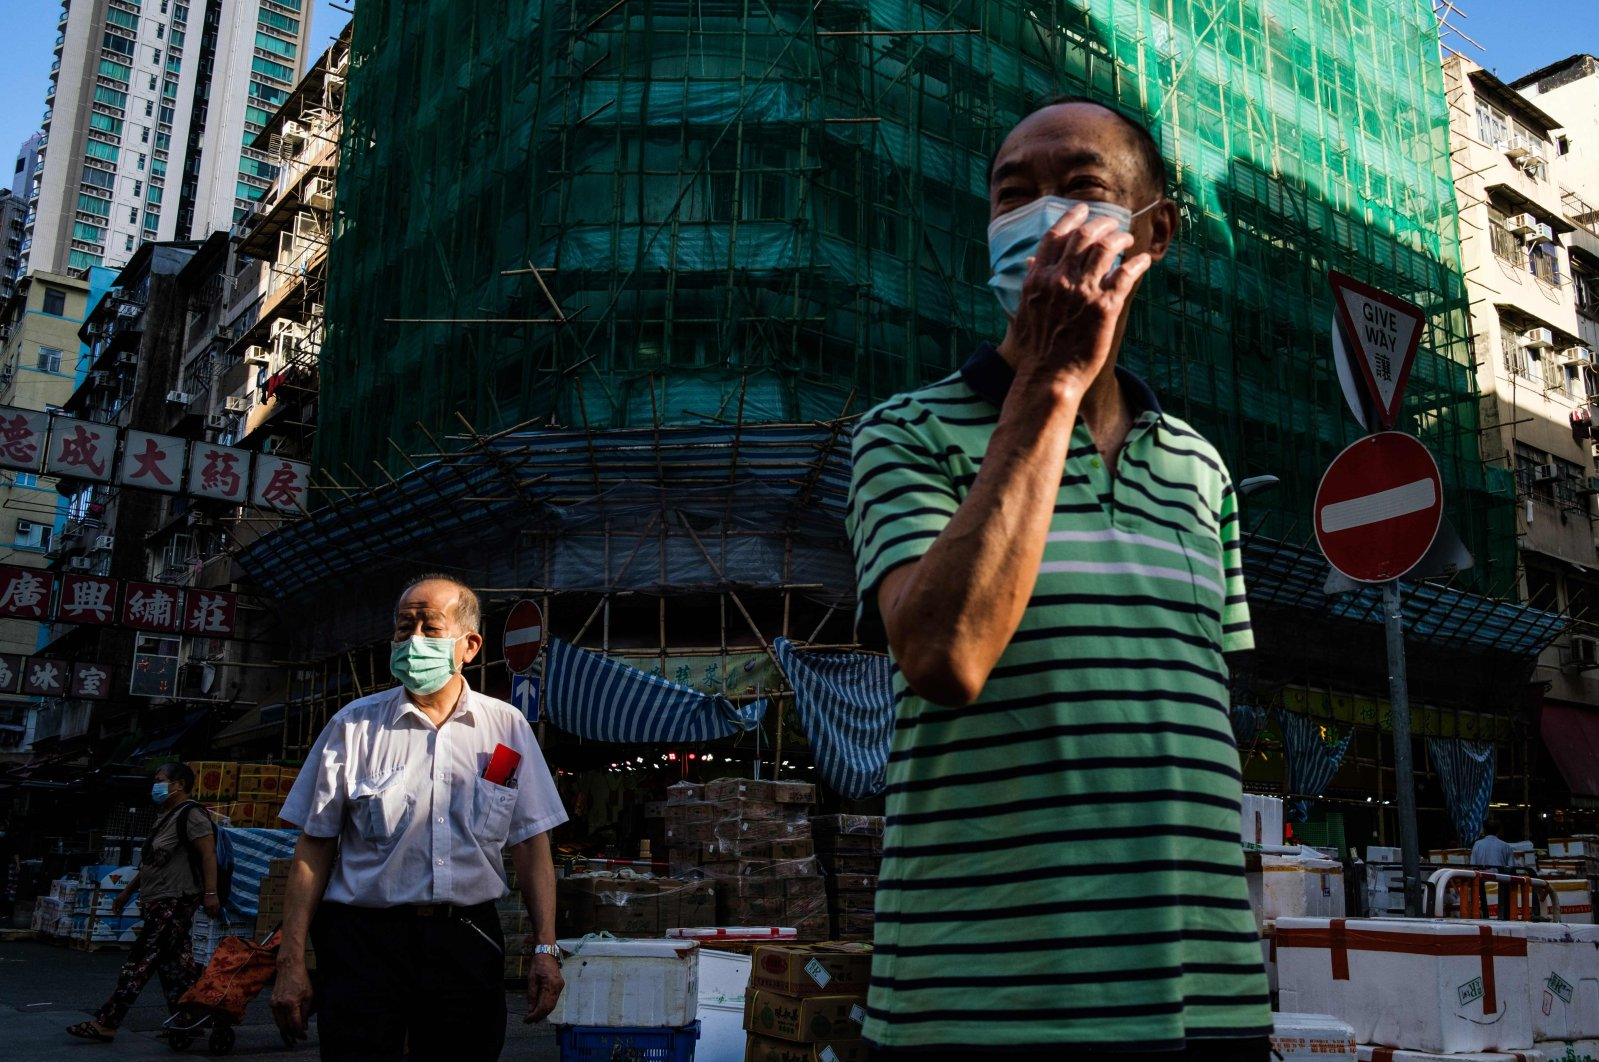 Pedestrians wear face masks in the Kowloon-side Sham Shui Po district of Hong Kong, China, in the early morning of July 29, 2020. (AFP Photo)